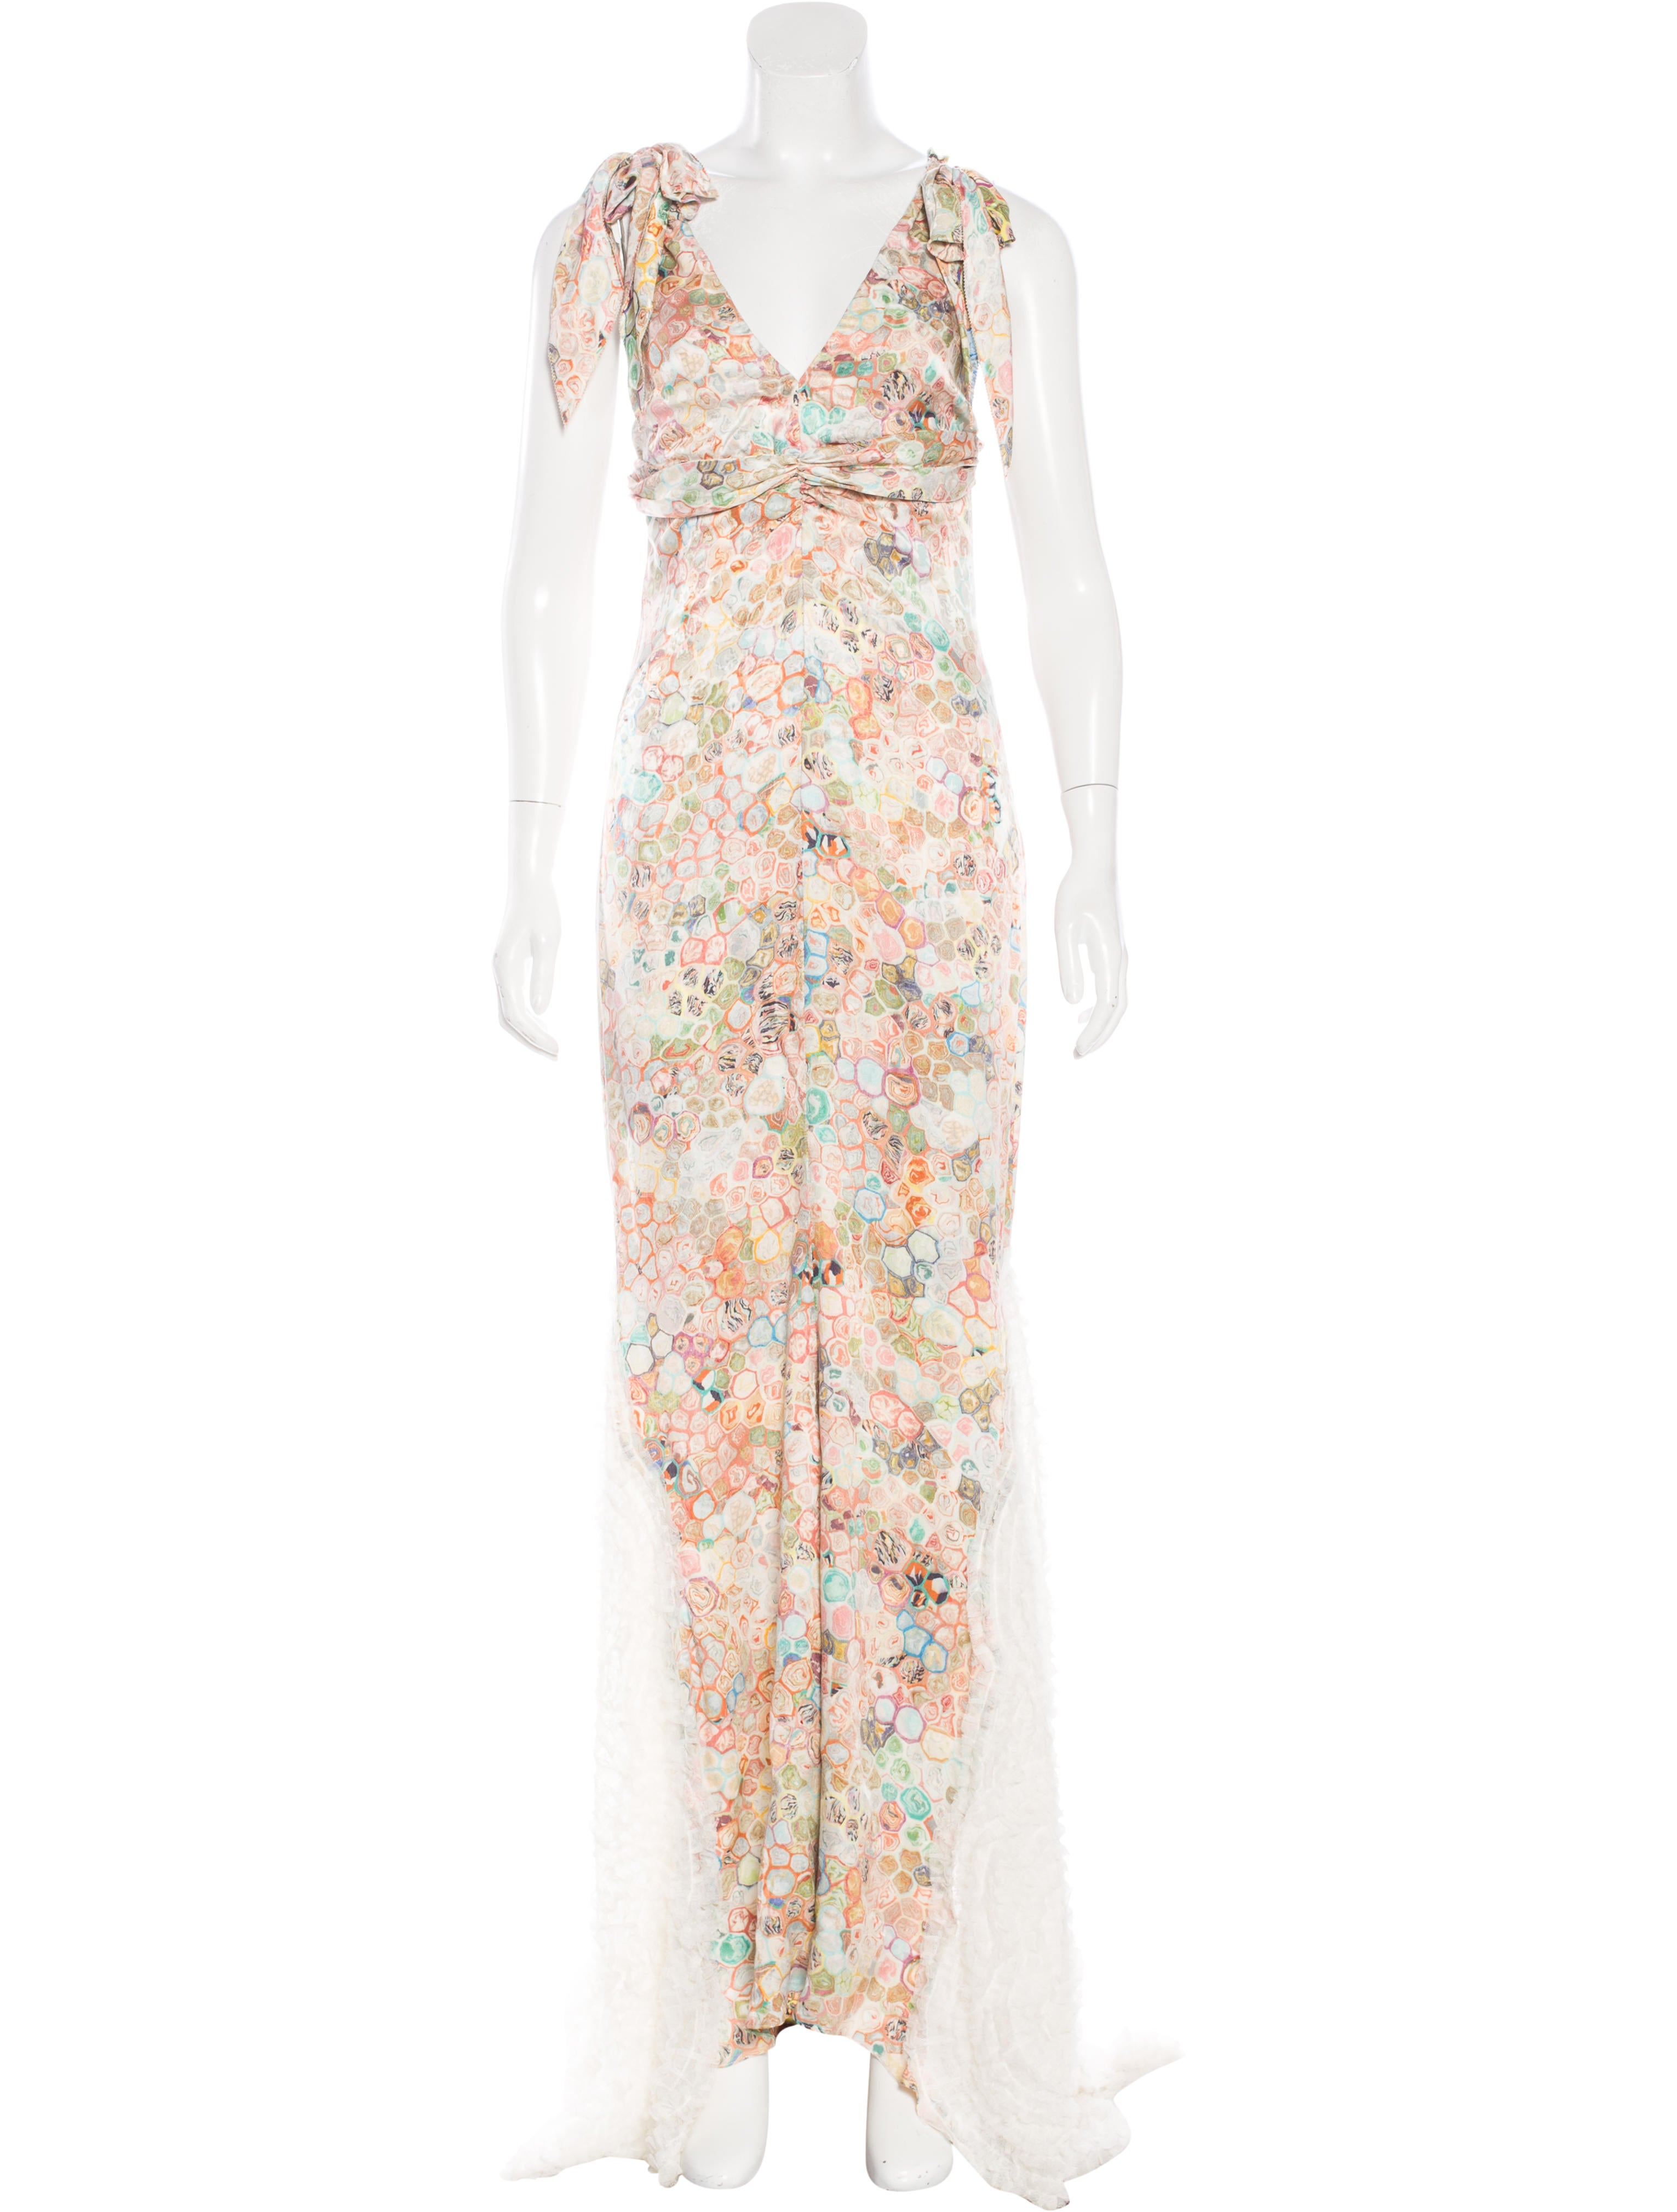 Vera Wang Floral Print Evening Gown - Clothing - VER26283 | The RealReal